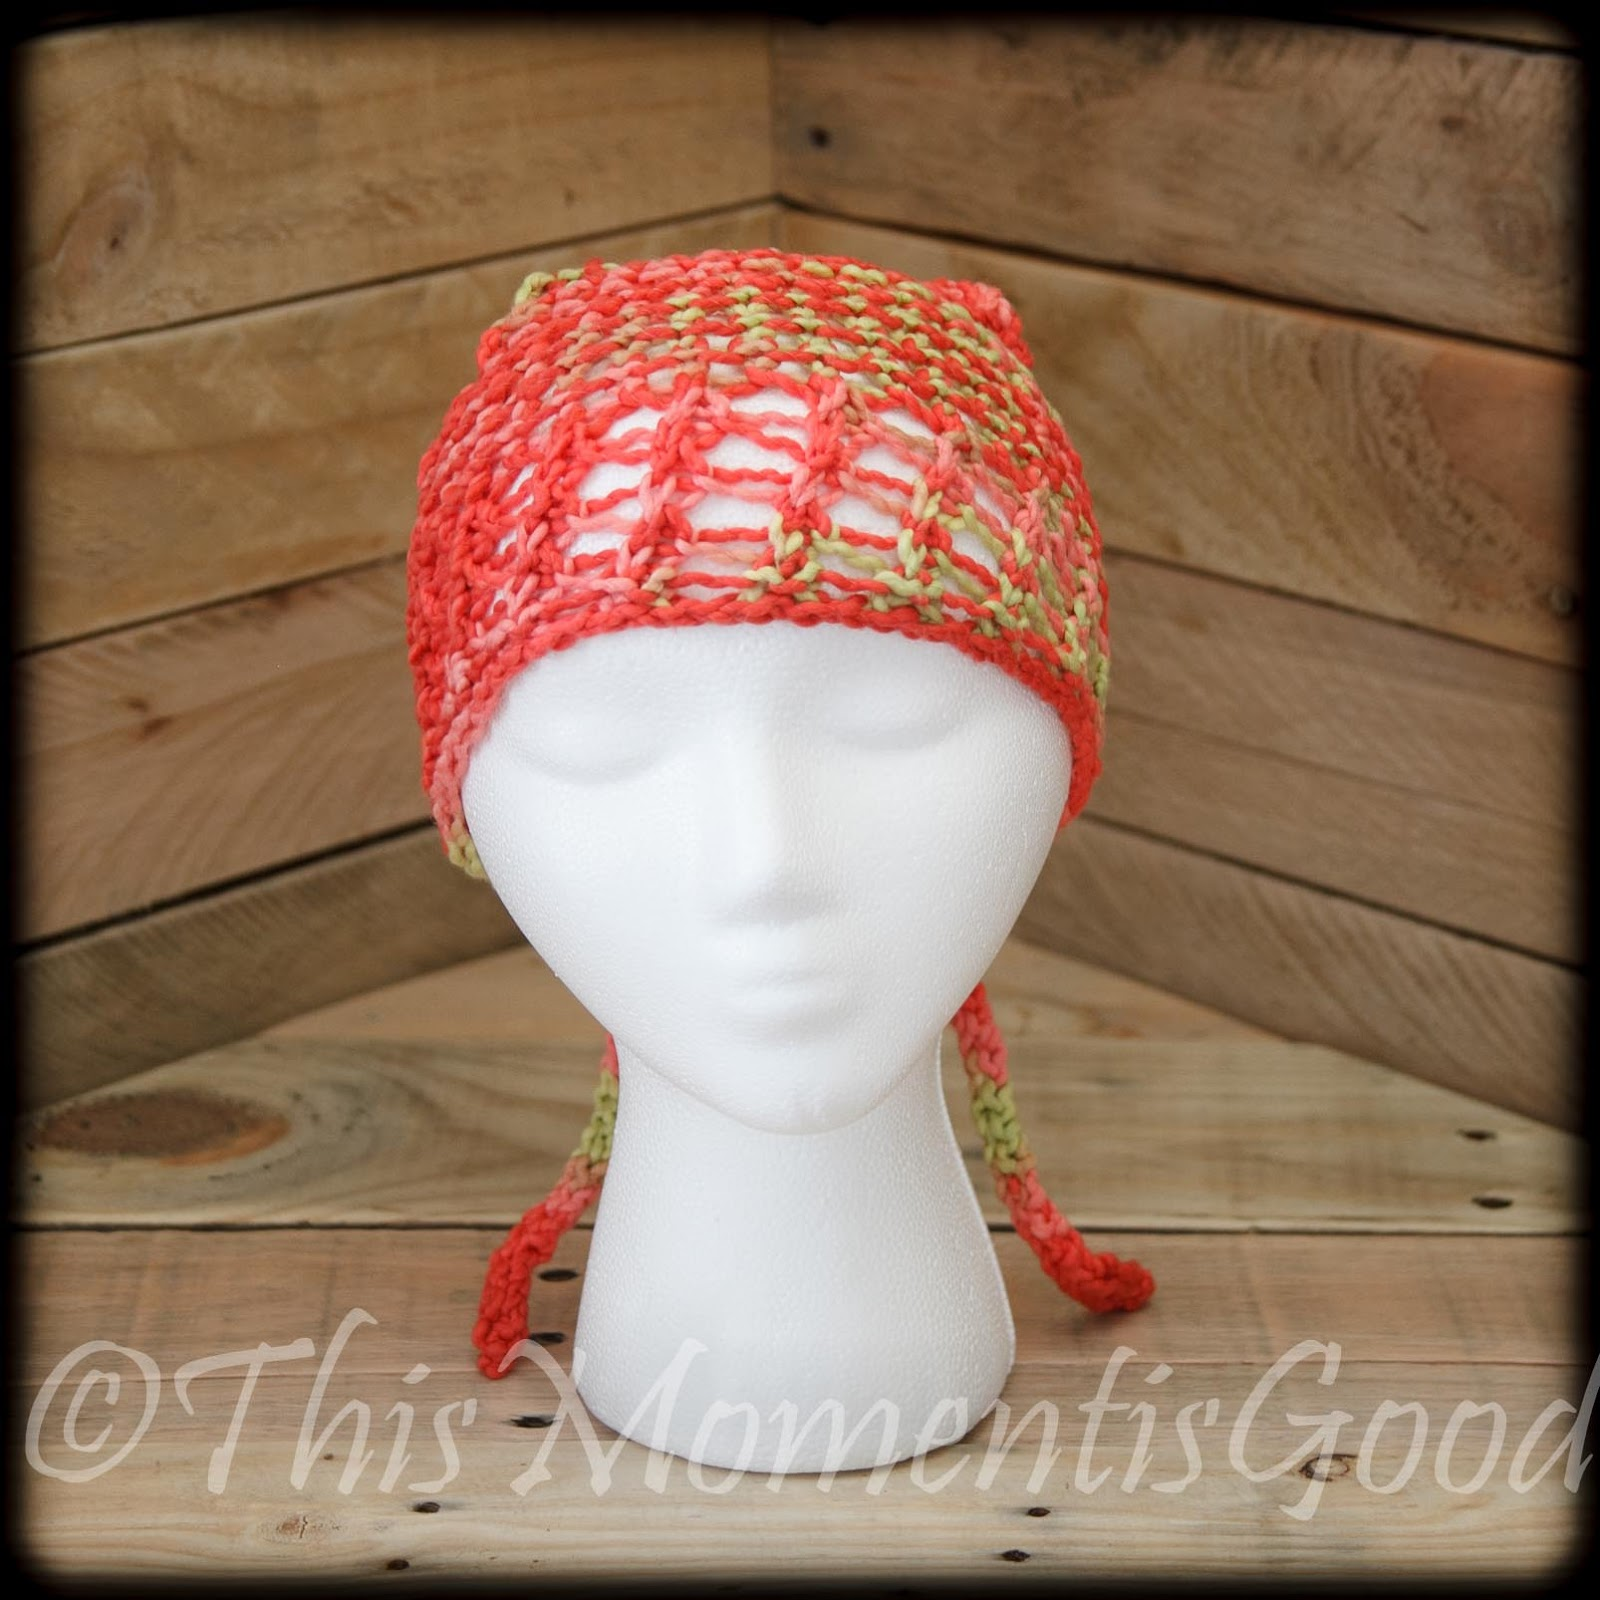 Knitting Patterns For Head Wraps : Loom Knitting by This Moment is Good!: LOOM KNIT HEAD WRAP/BANDANNA